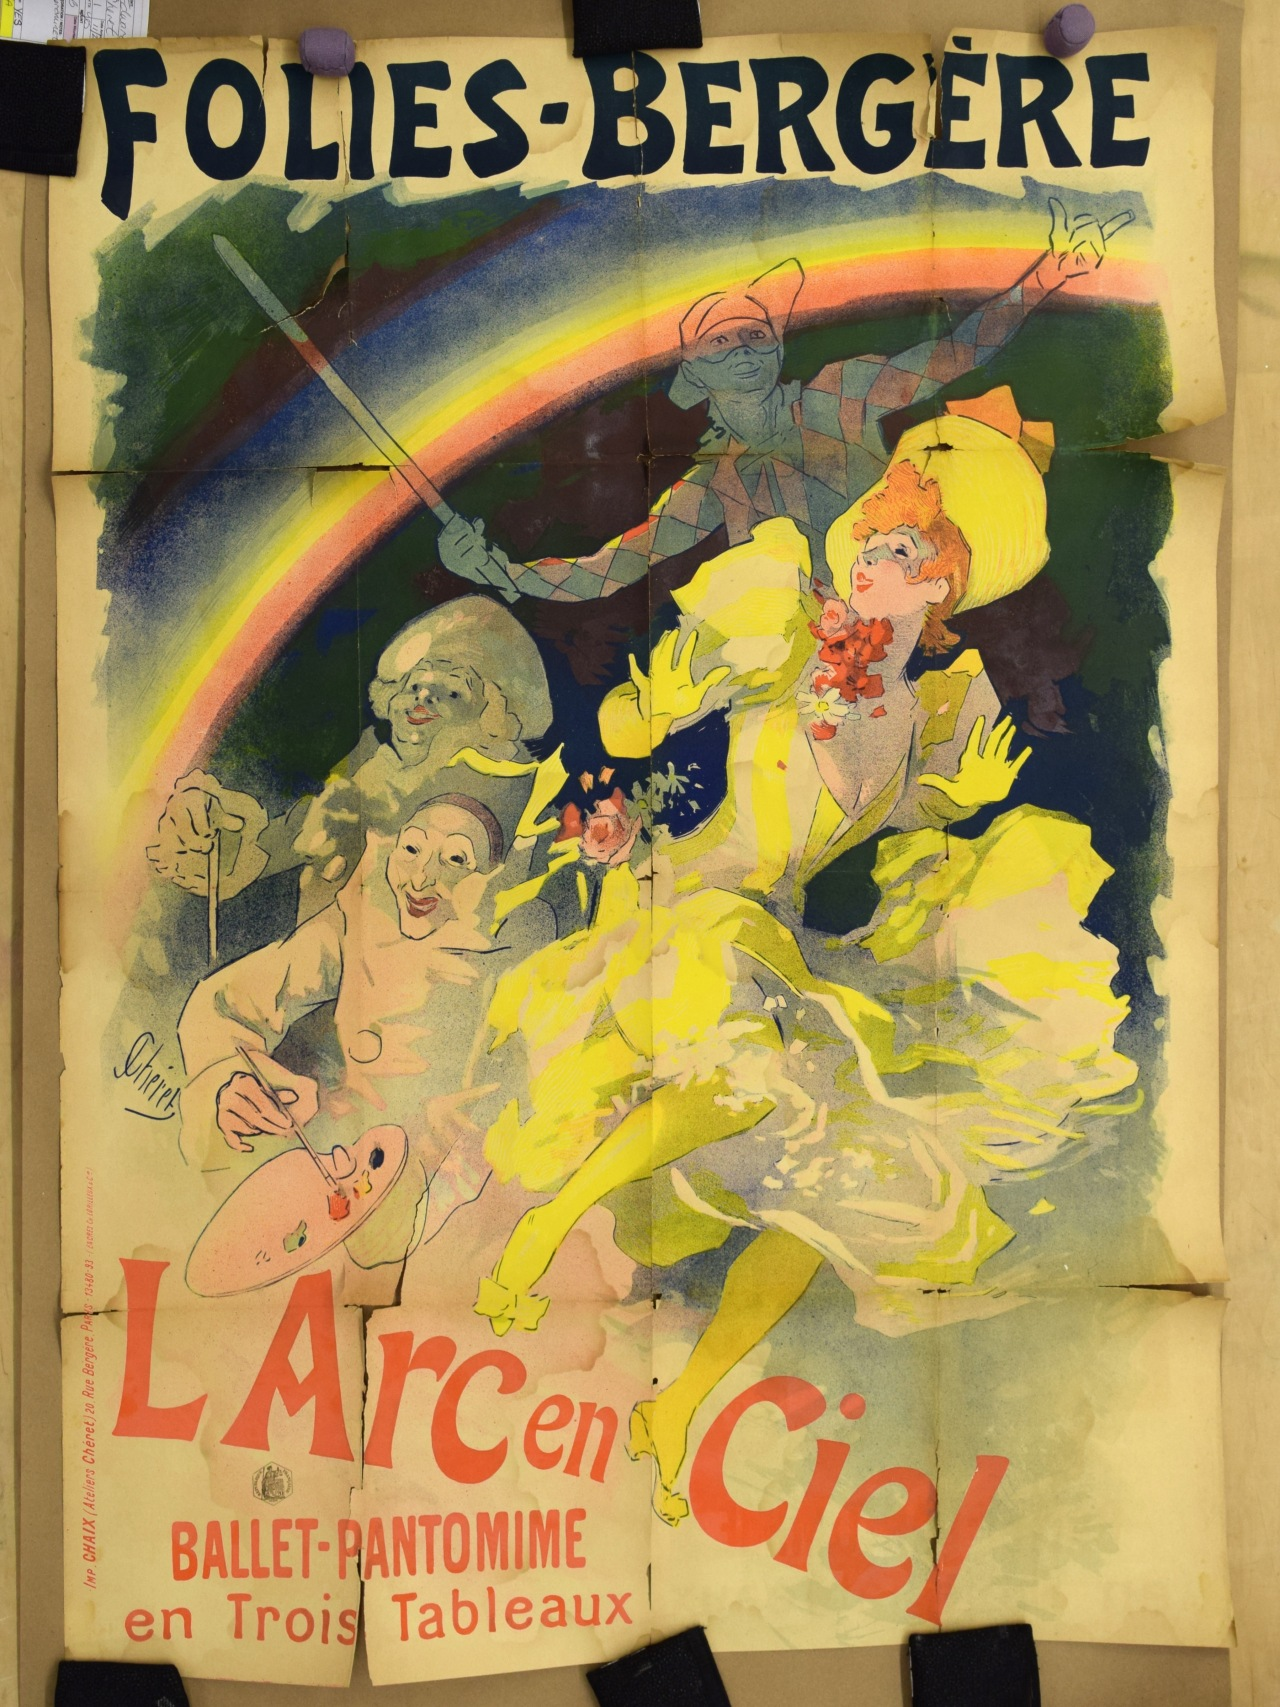 larc-en-ciel_before